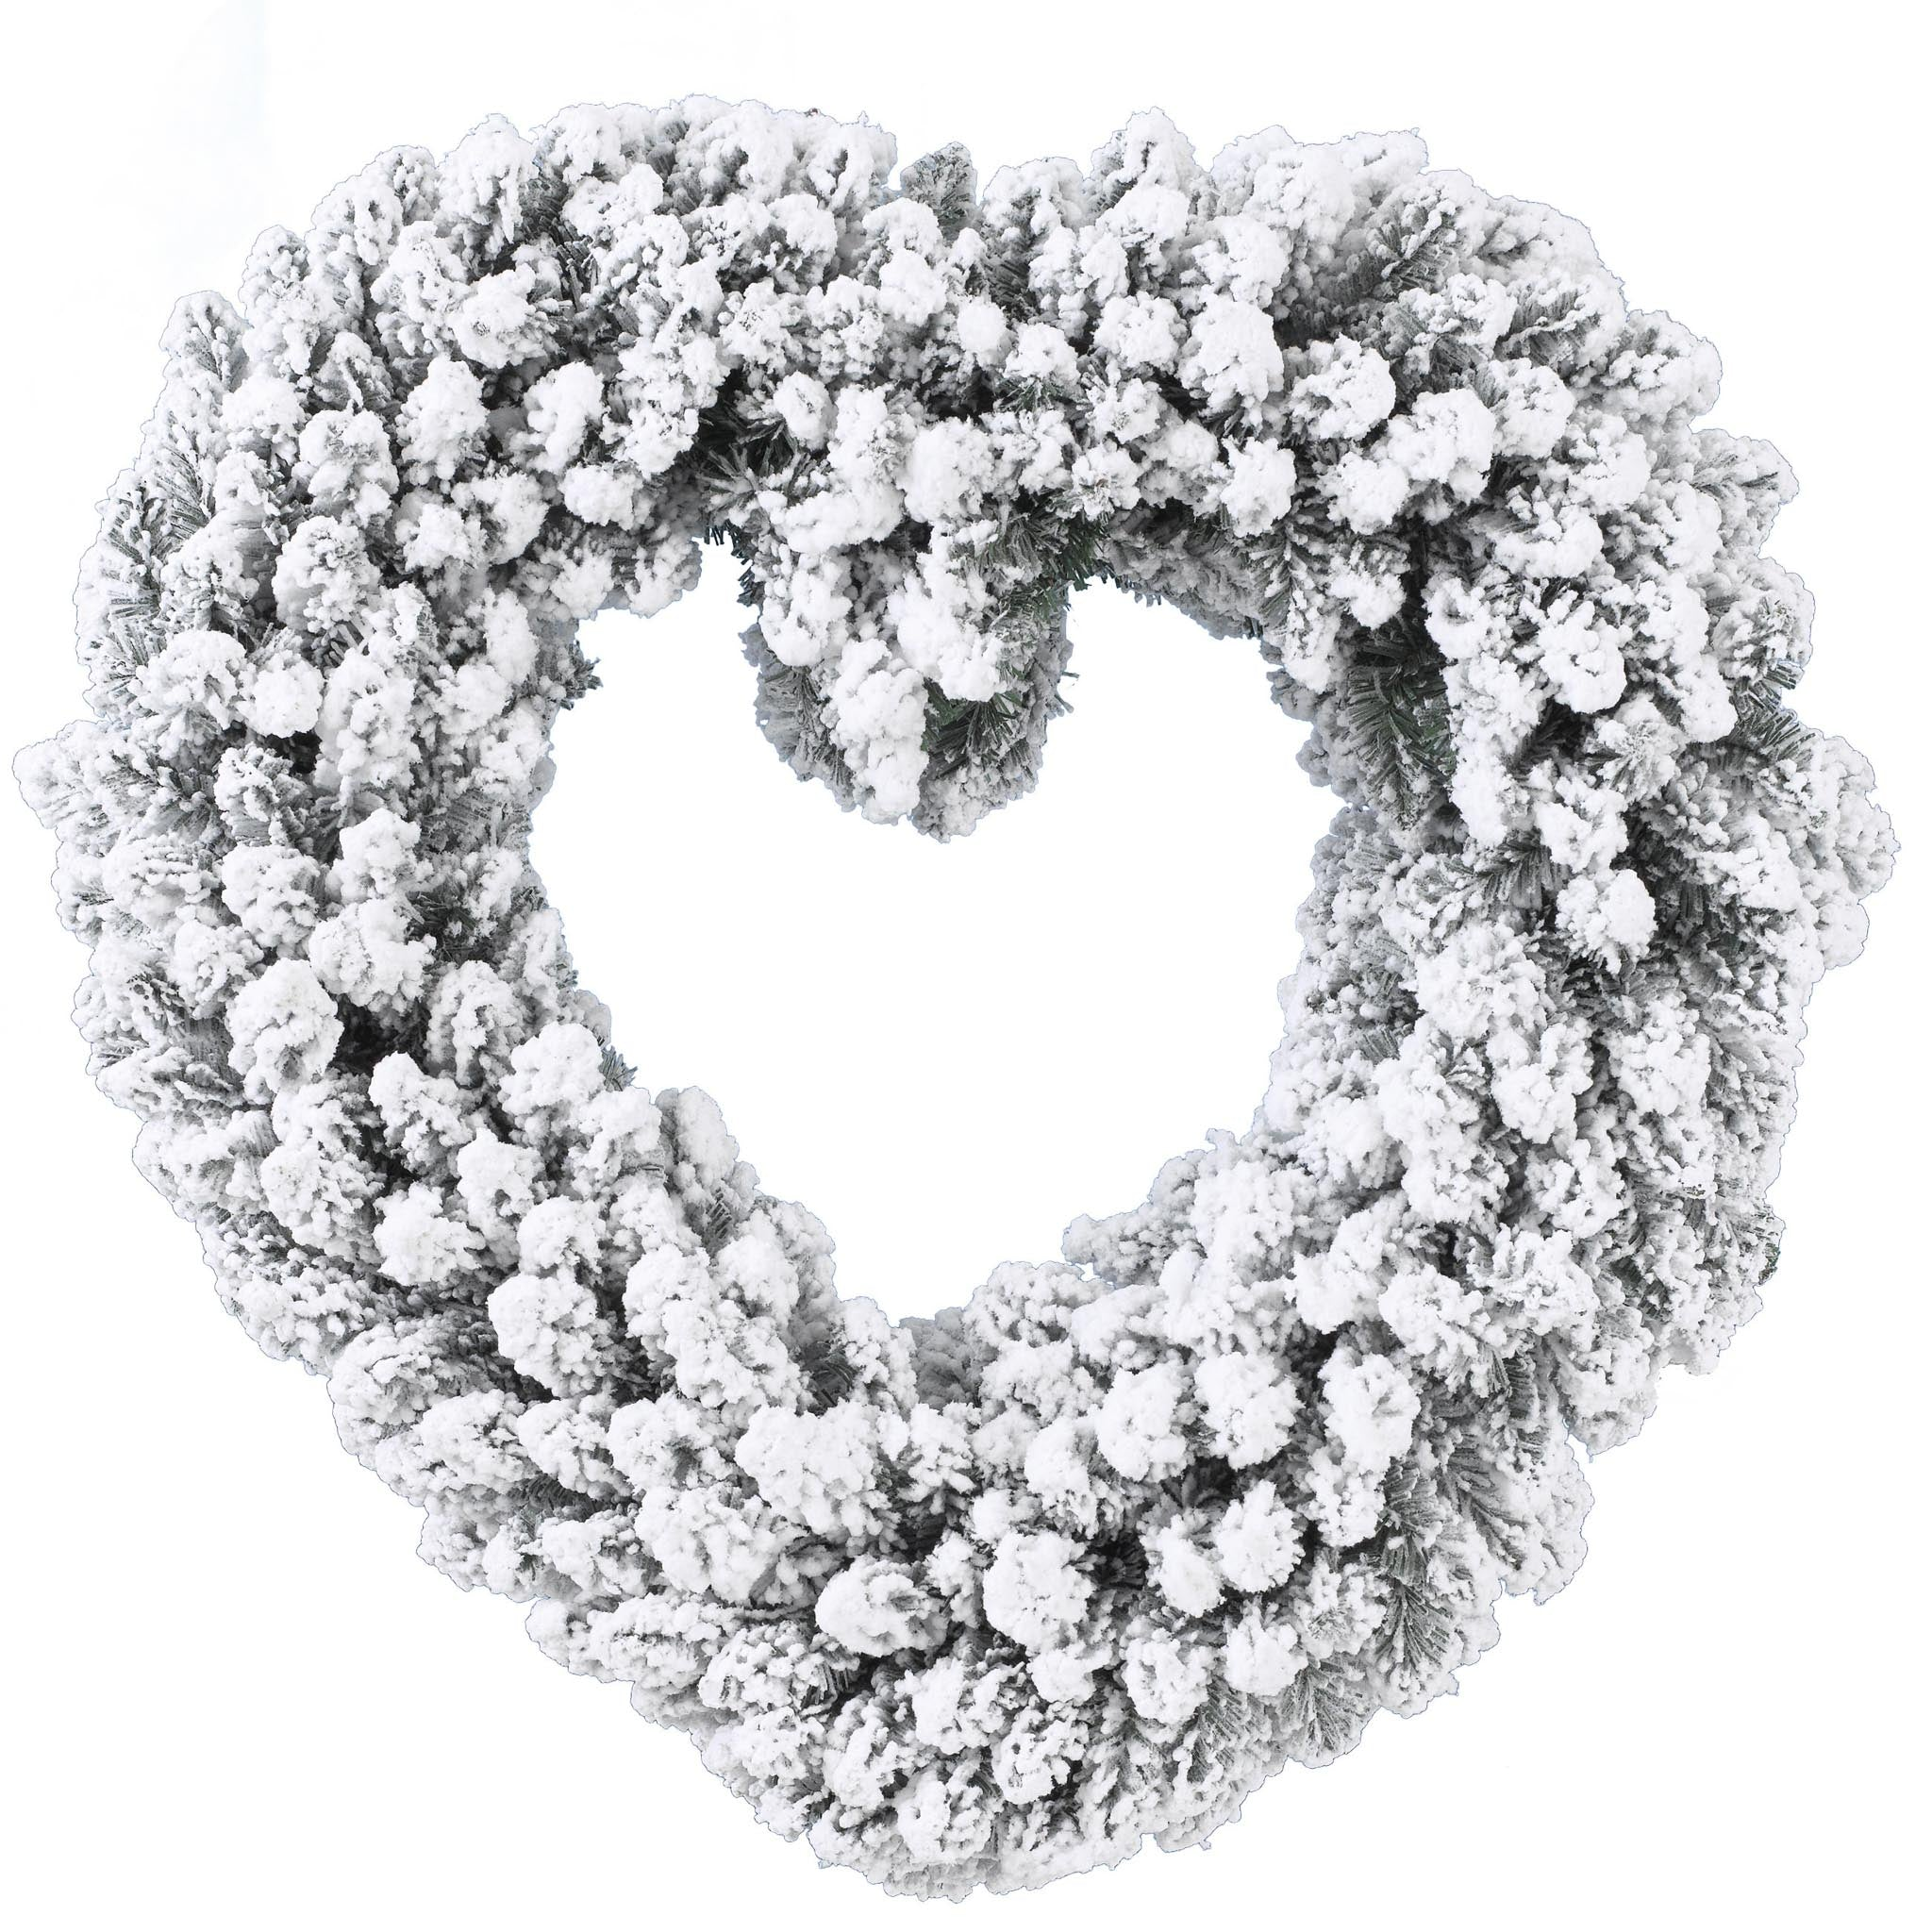 Snowy Heart Wreath